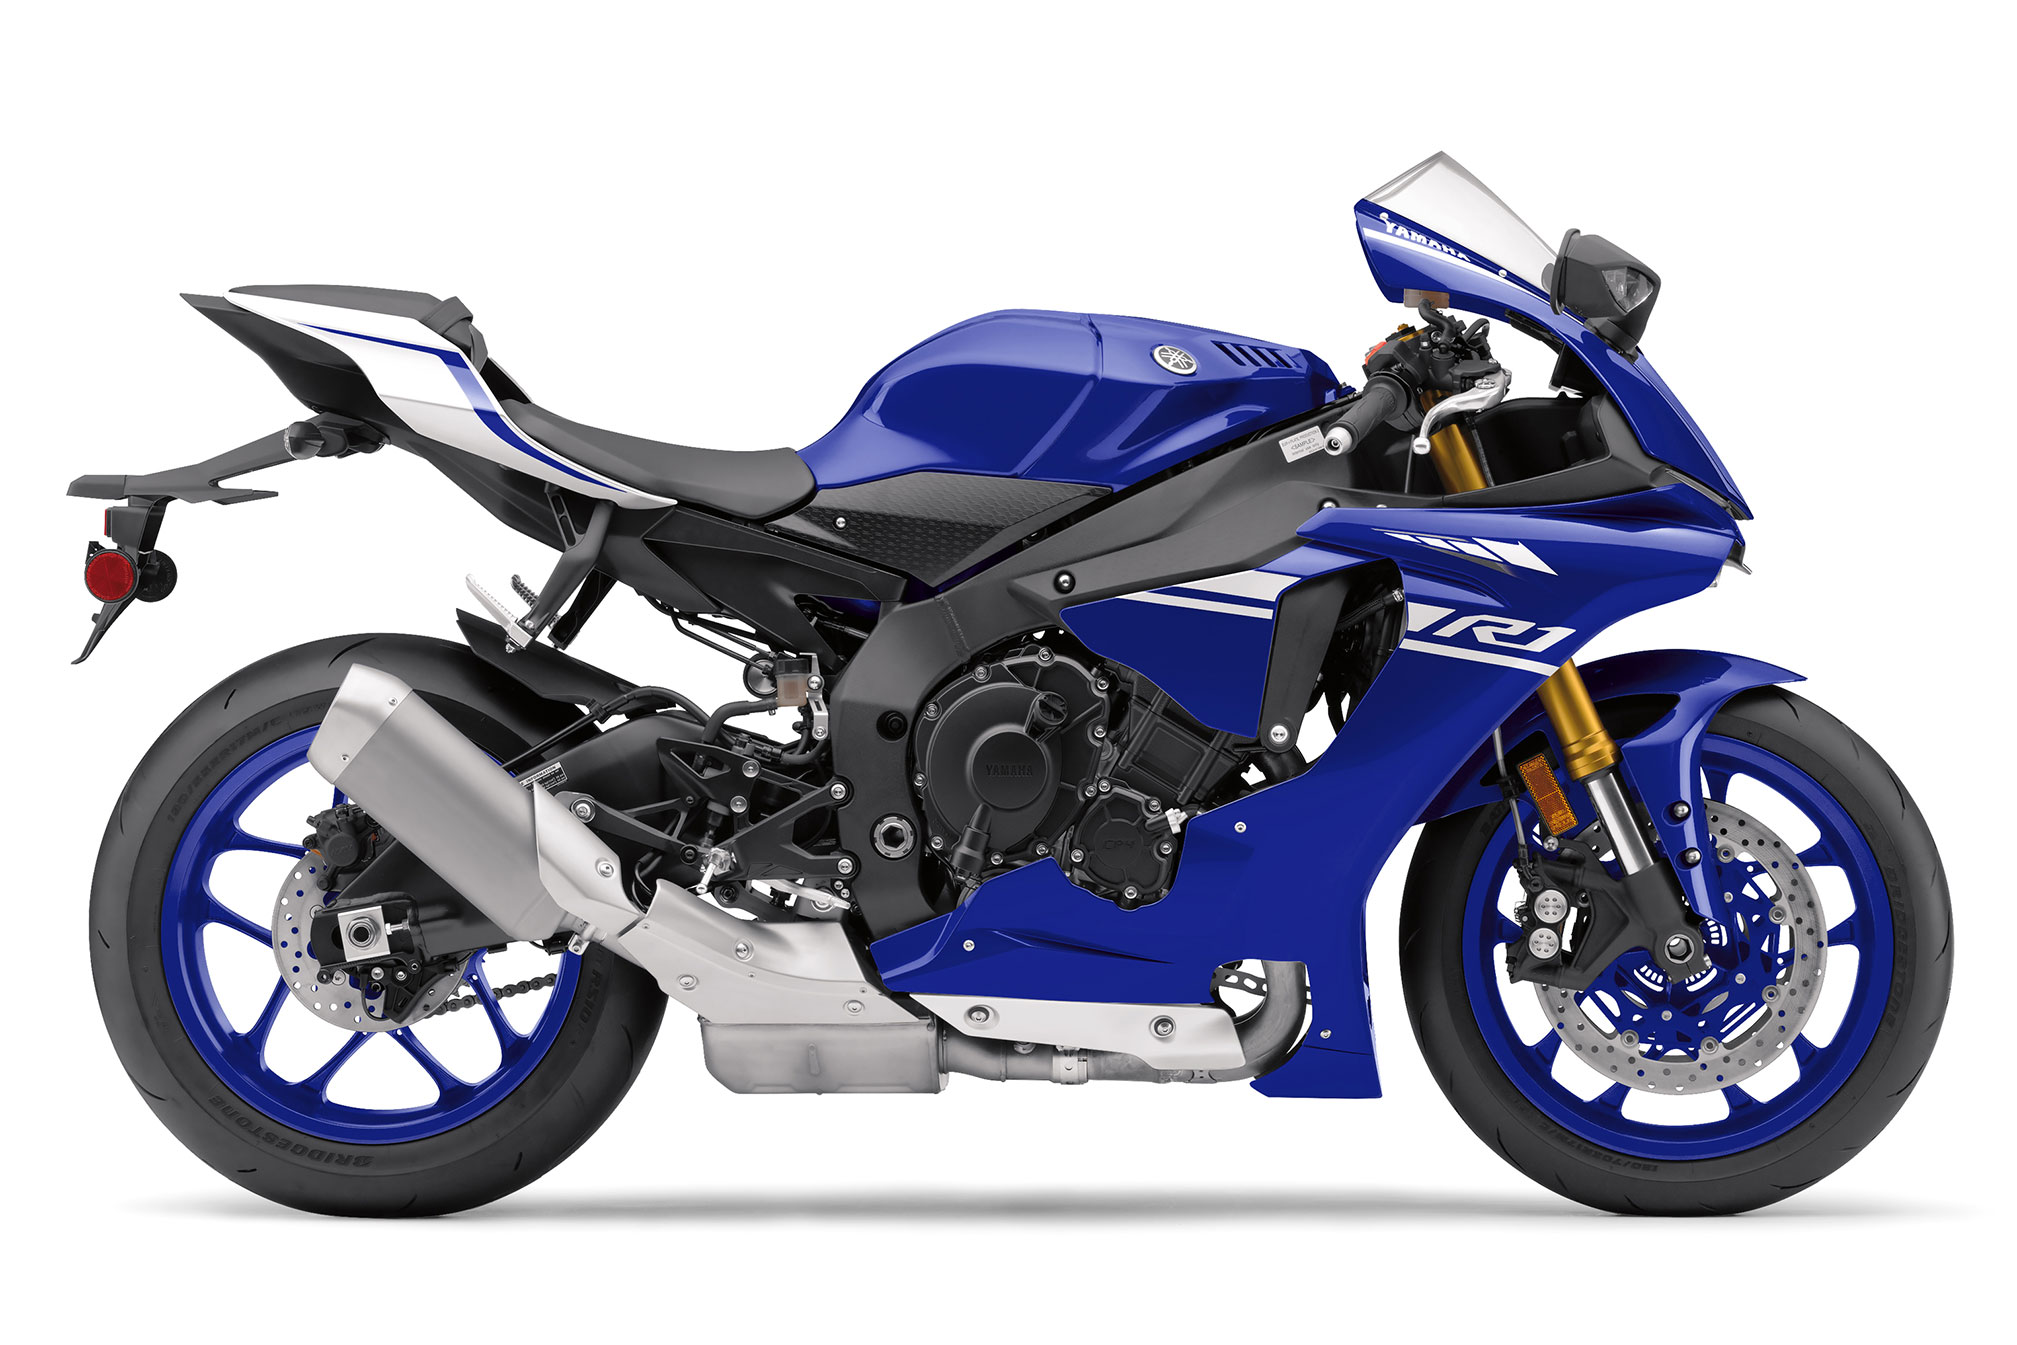 2017 Yamaha Yzf R1 Review